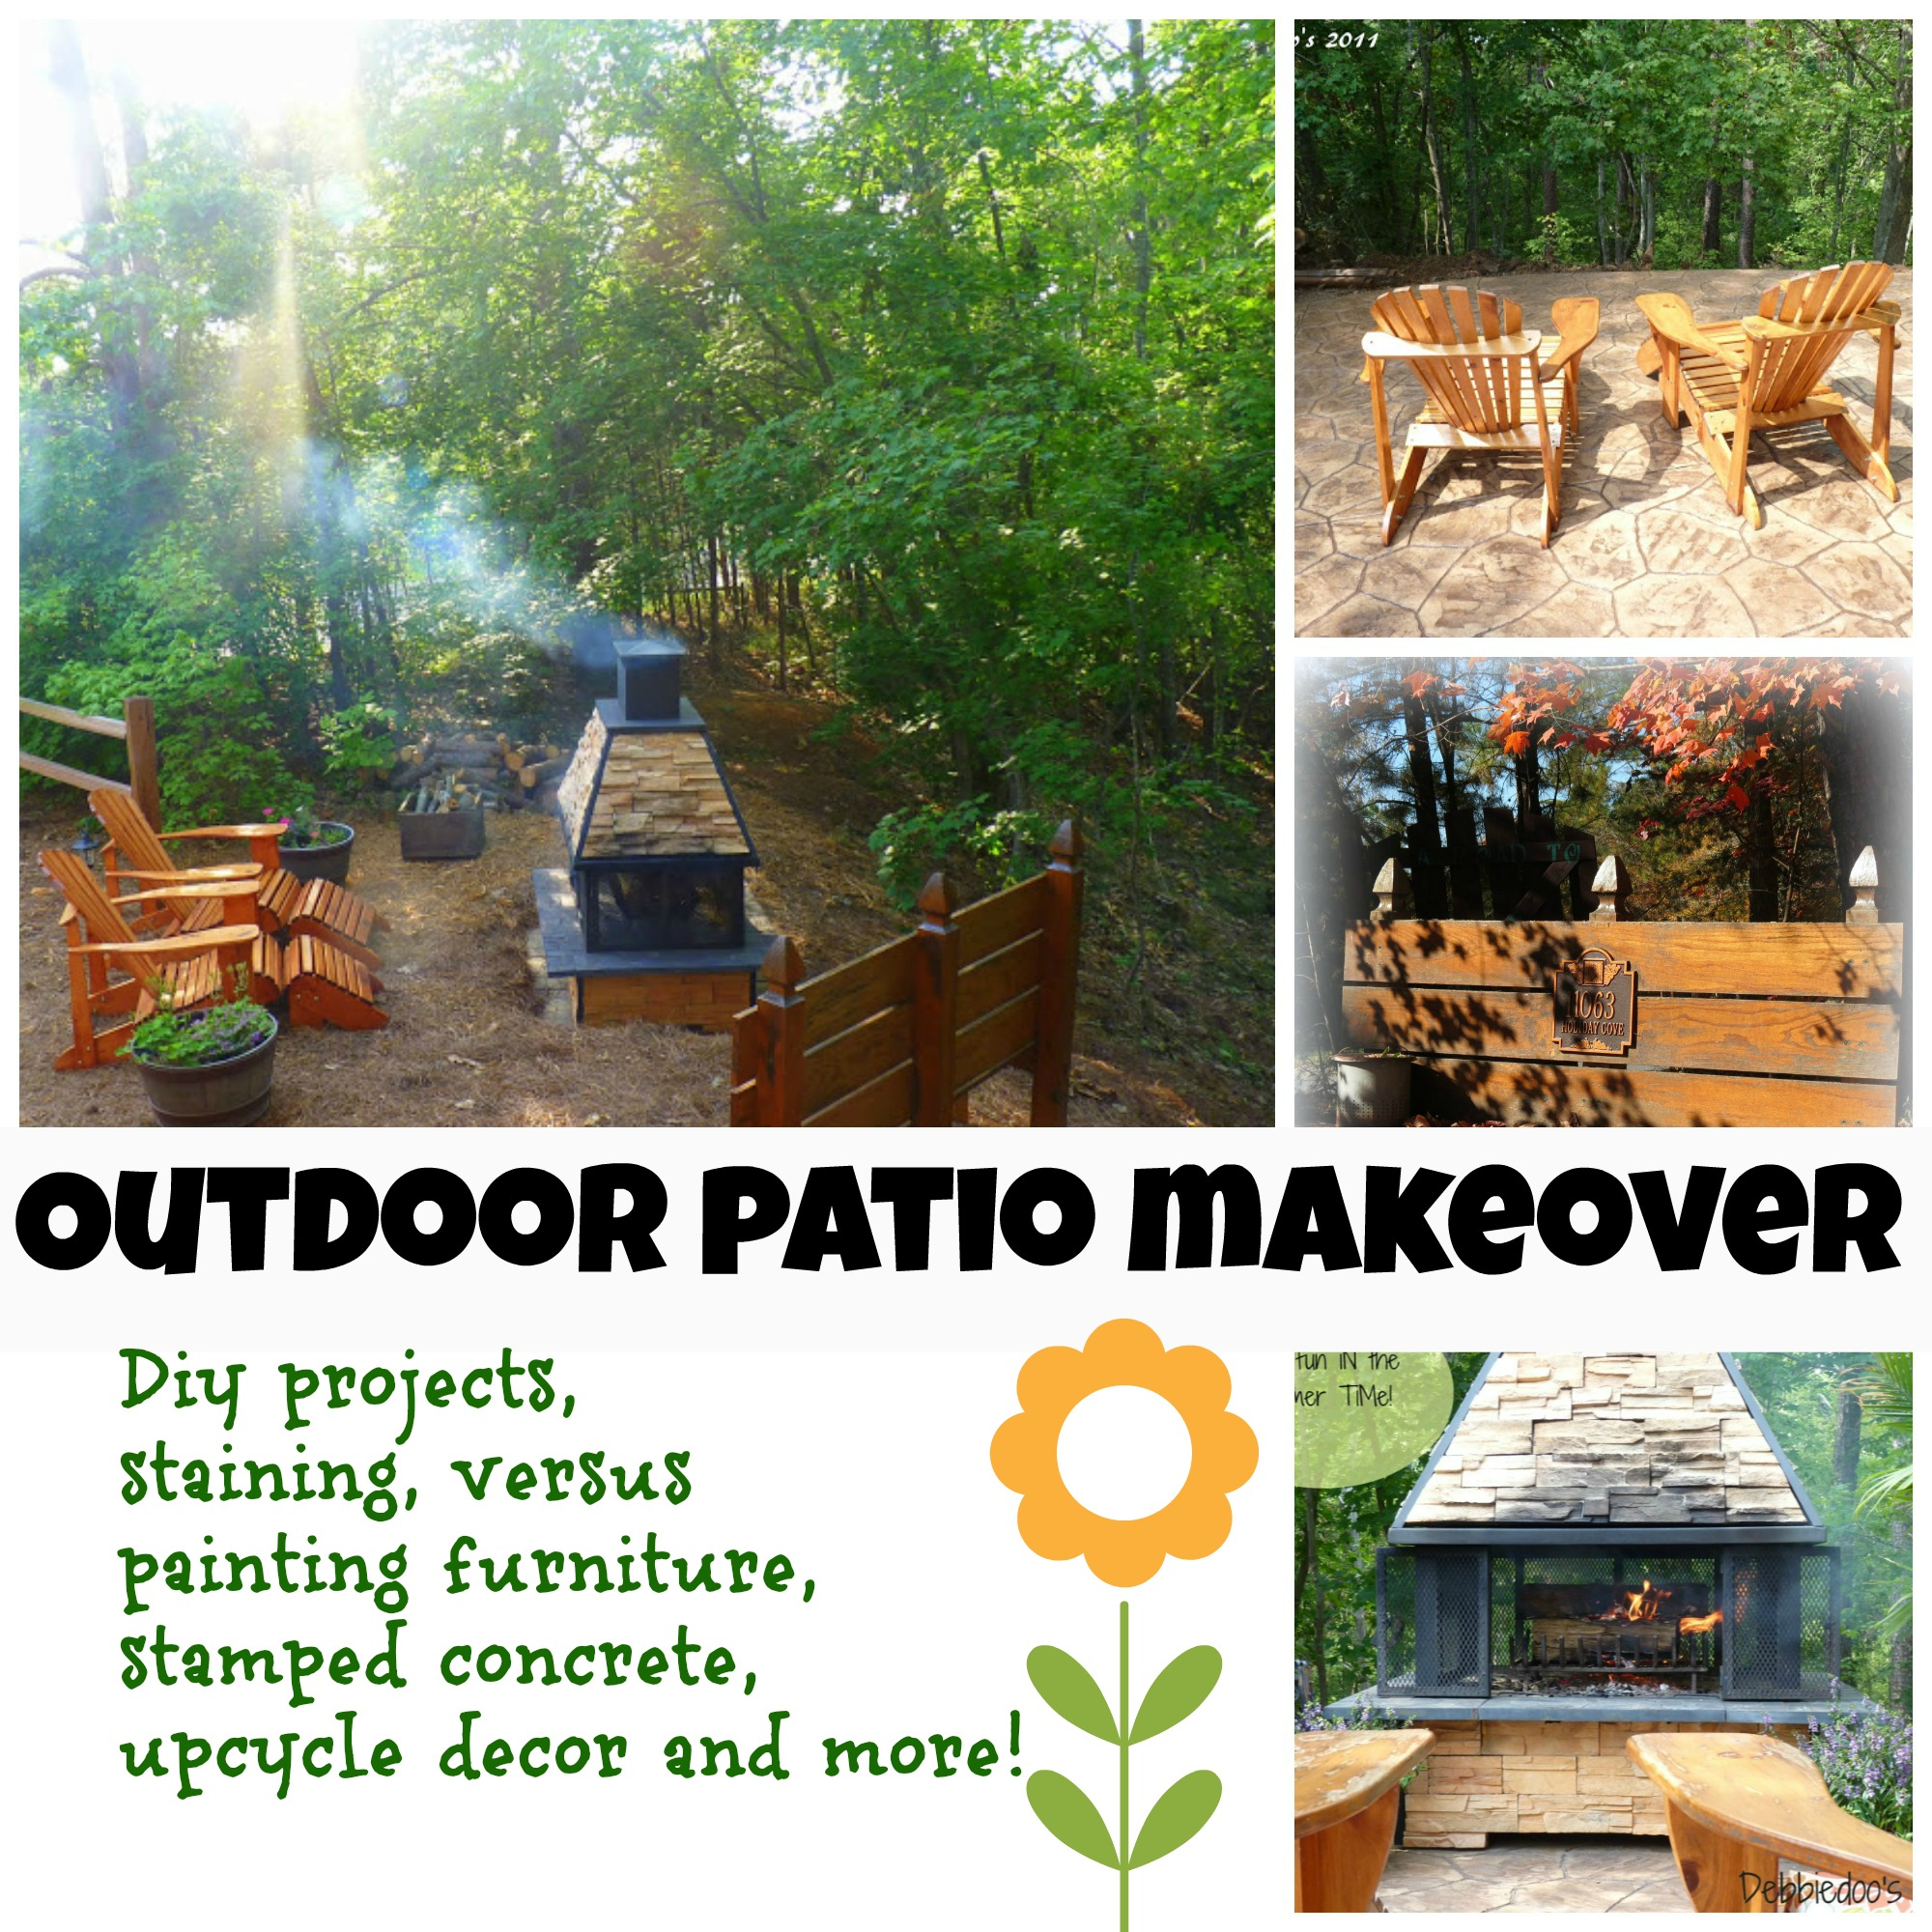 Outdoor patio makeoever